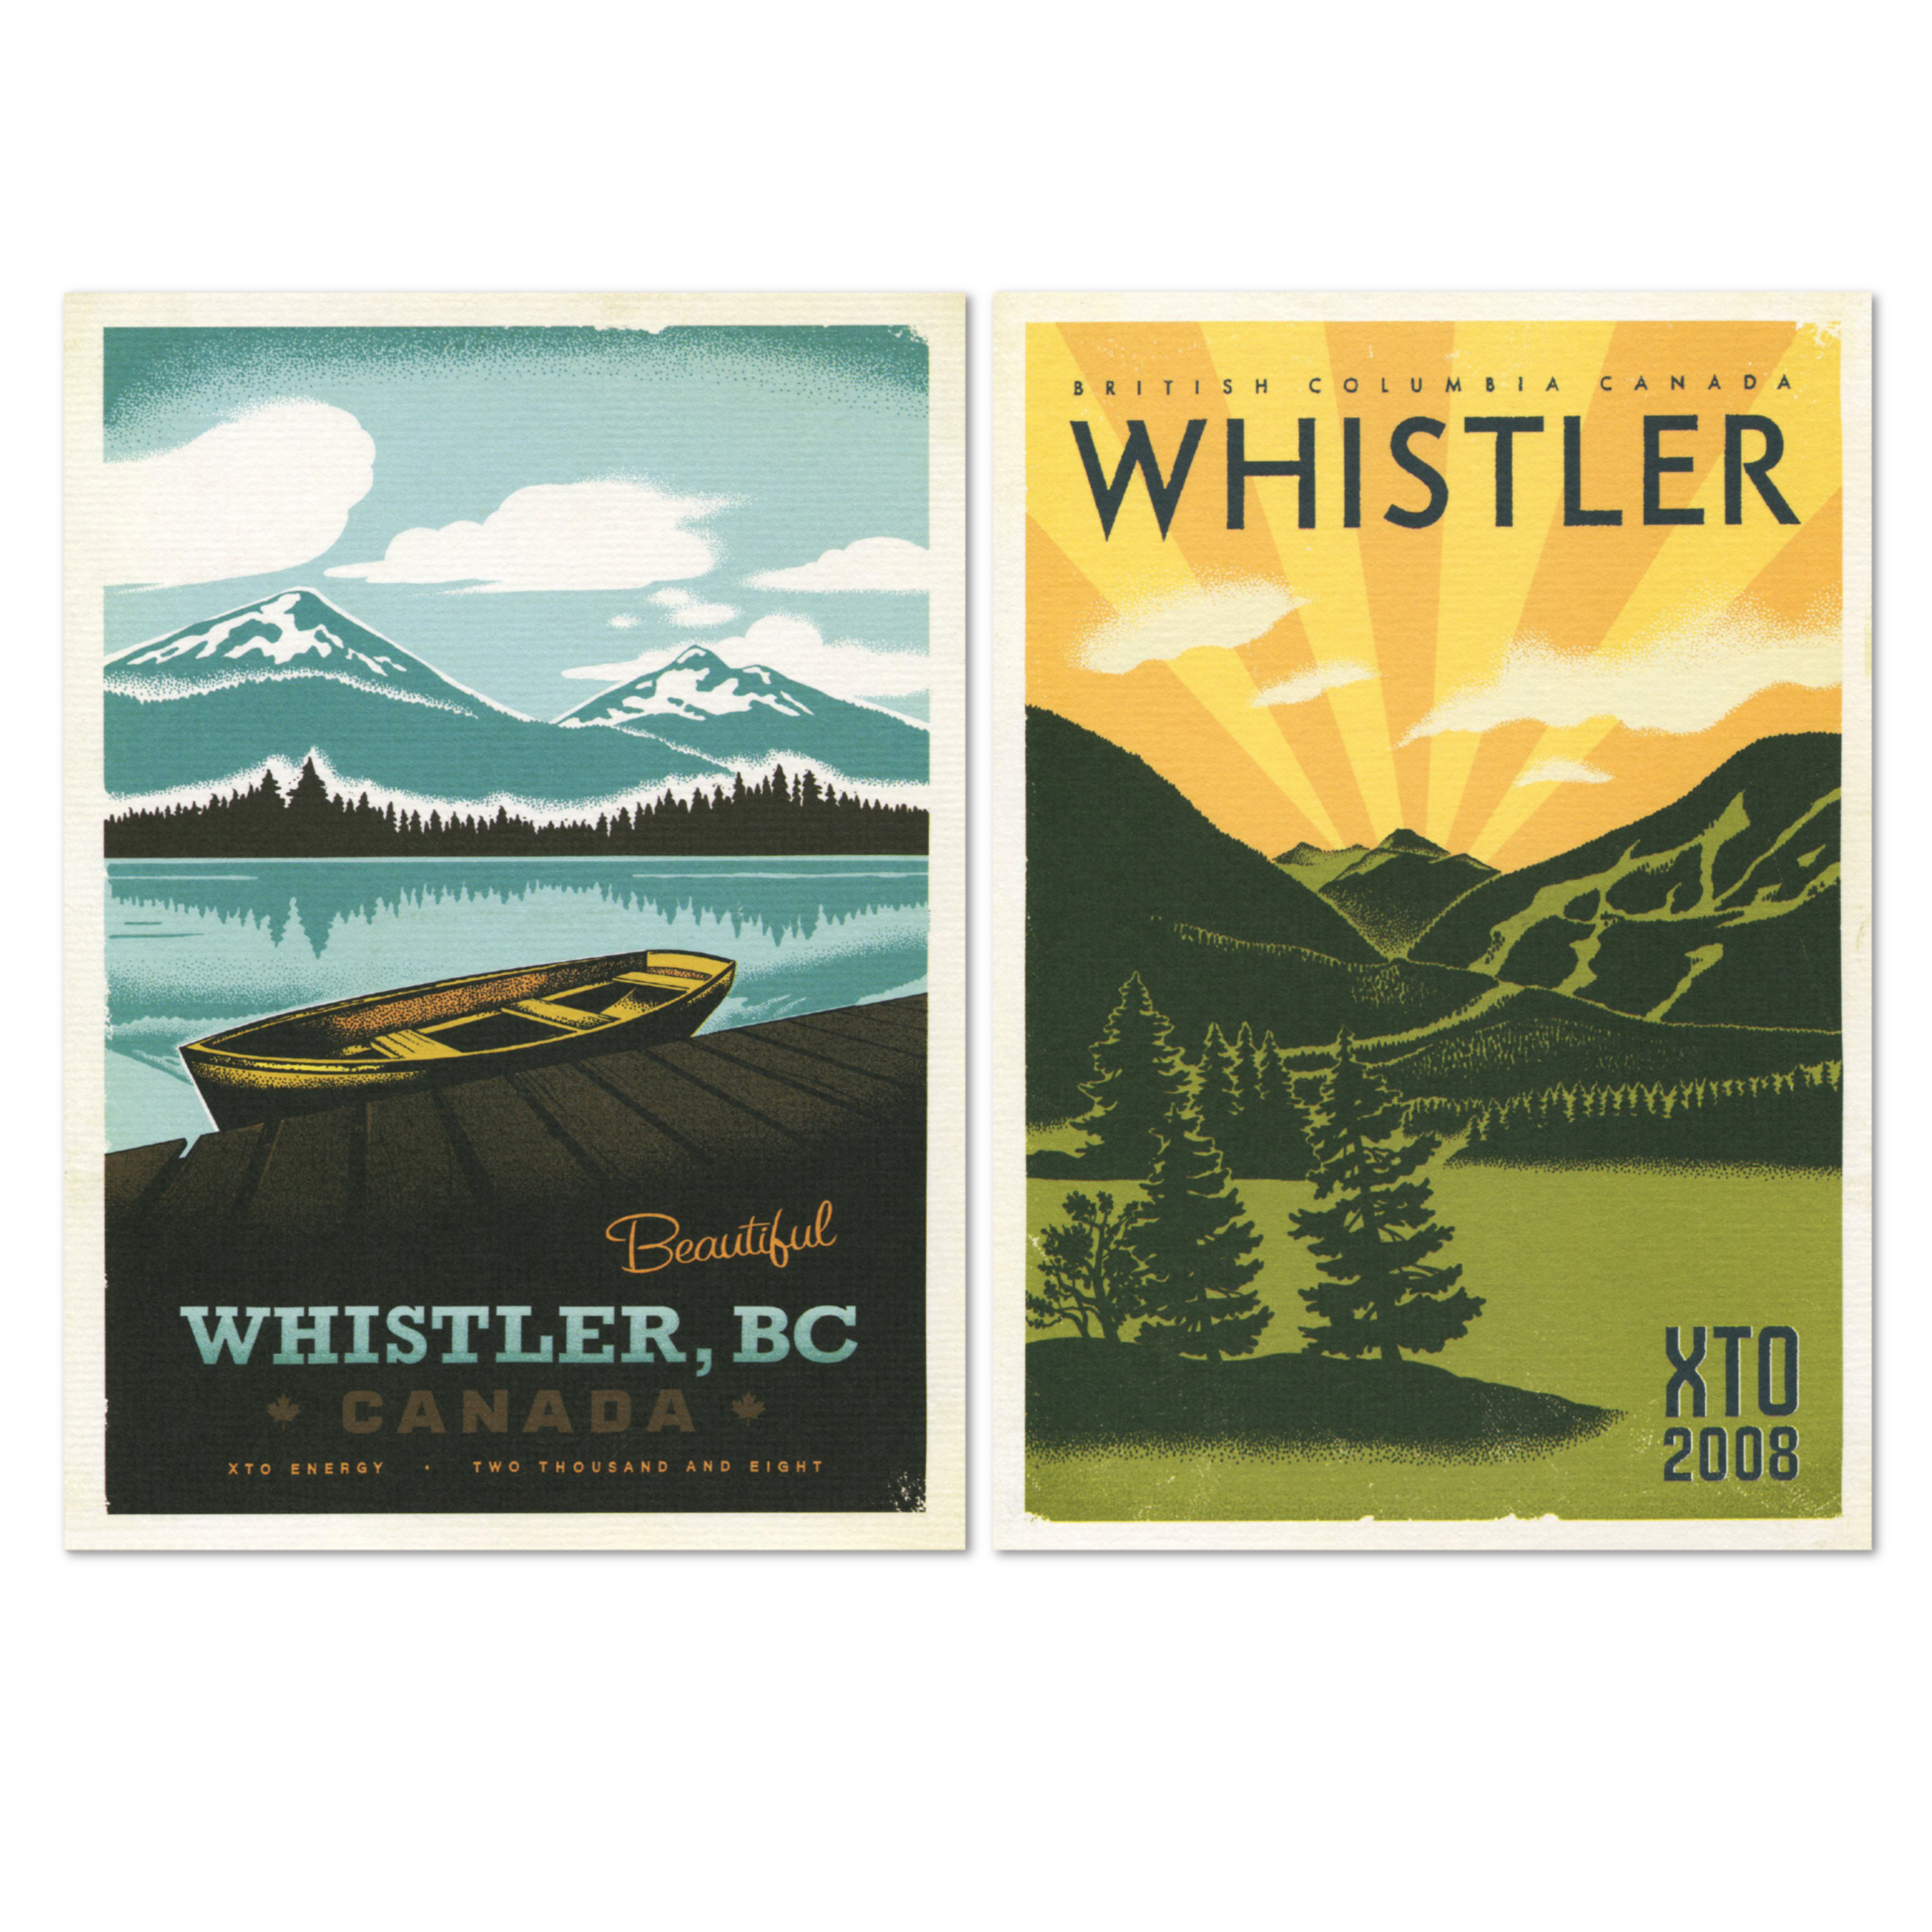 WHISTLER POSTCARD ILLUSTRATIONS.jpg